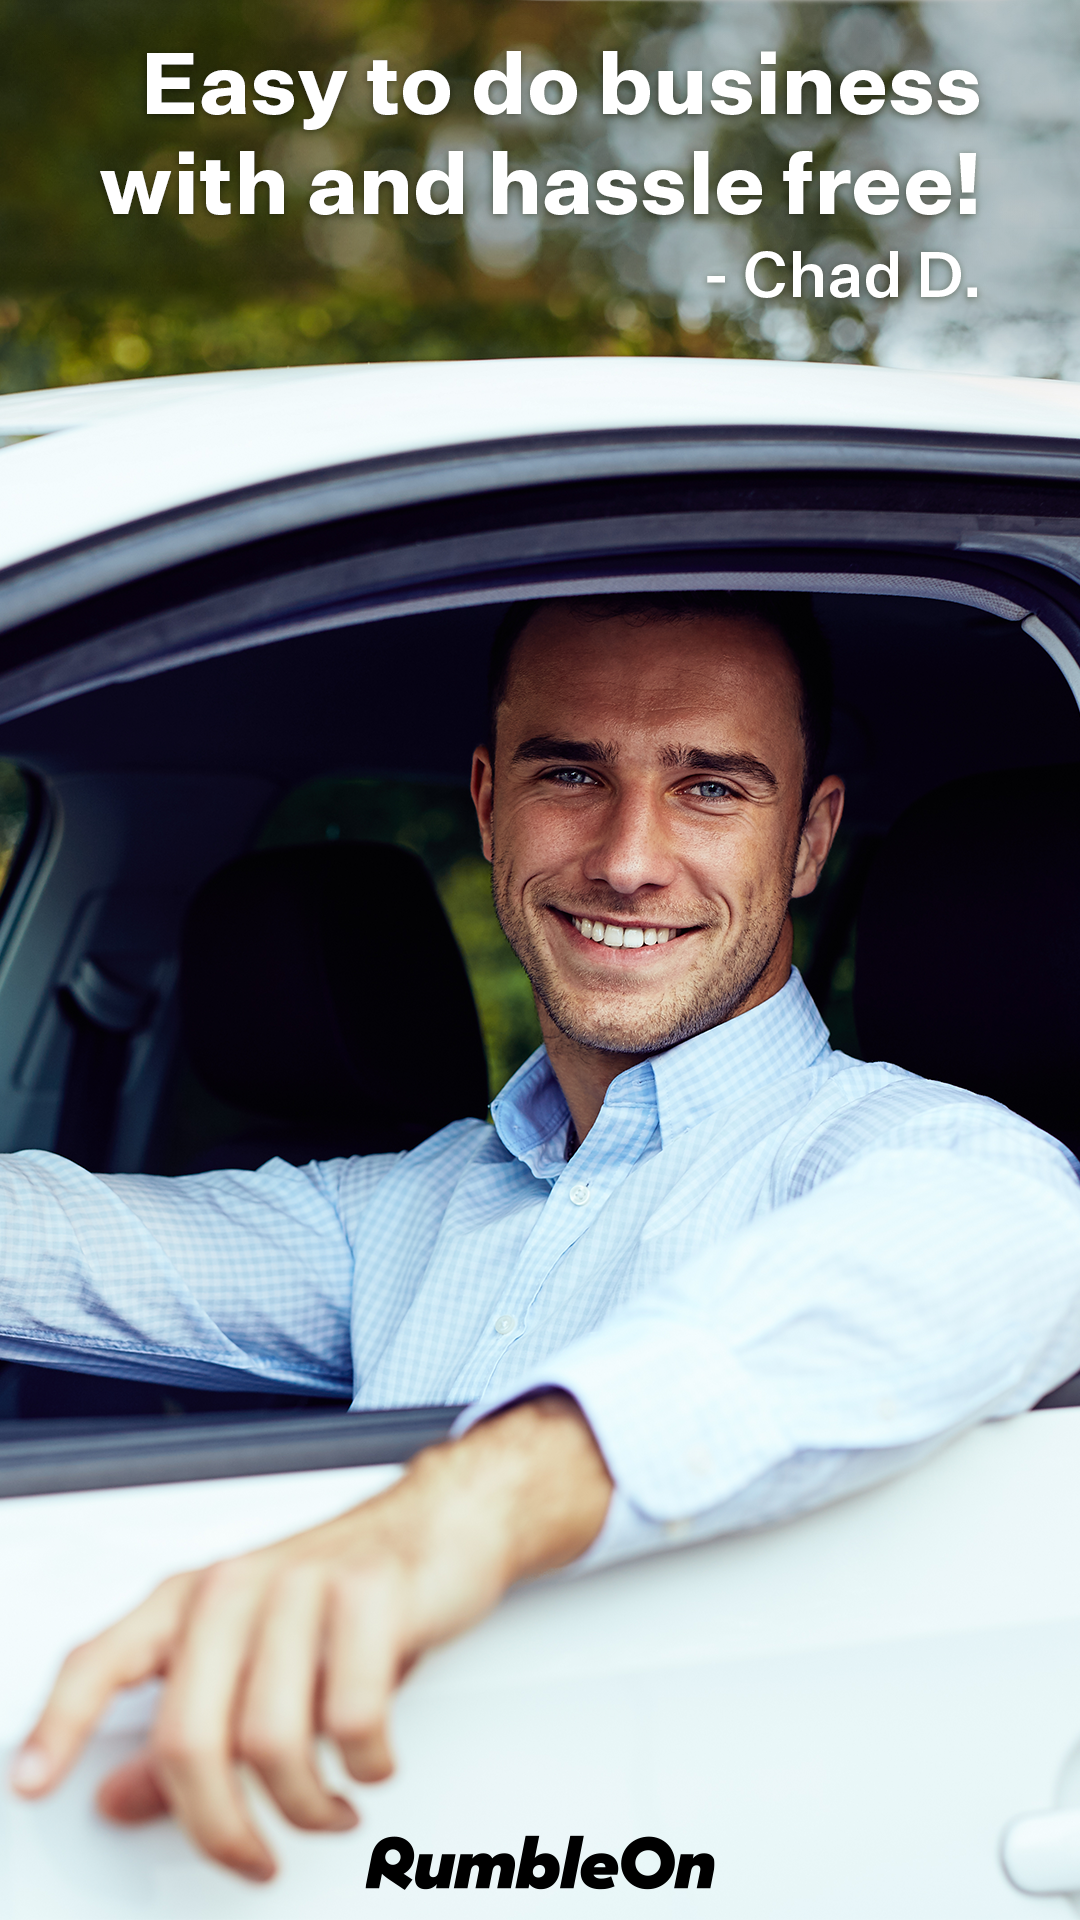 Taking The Stress Off You Is What We Do Sell Your Car With Us Today Auto Rumbleon Automotive Sellonline Tes In 2020 Selling Online Vehicles Sports Cars